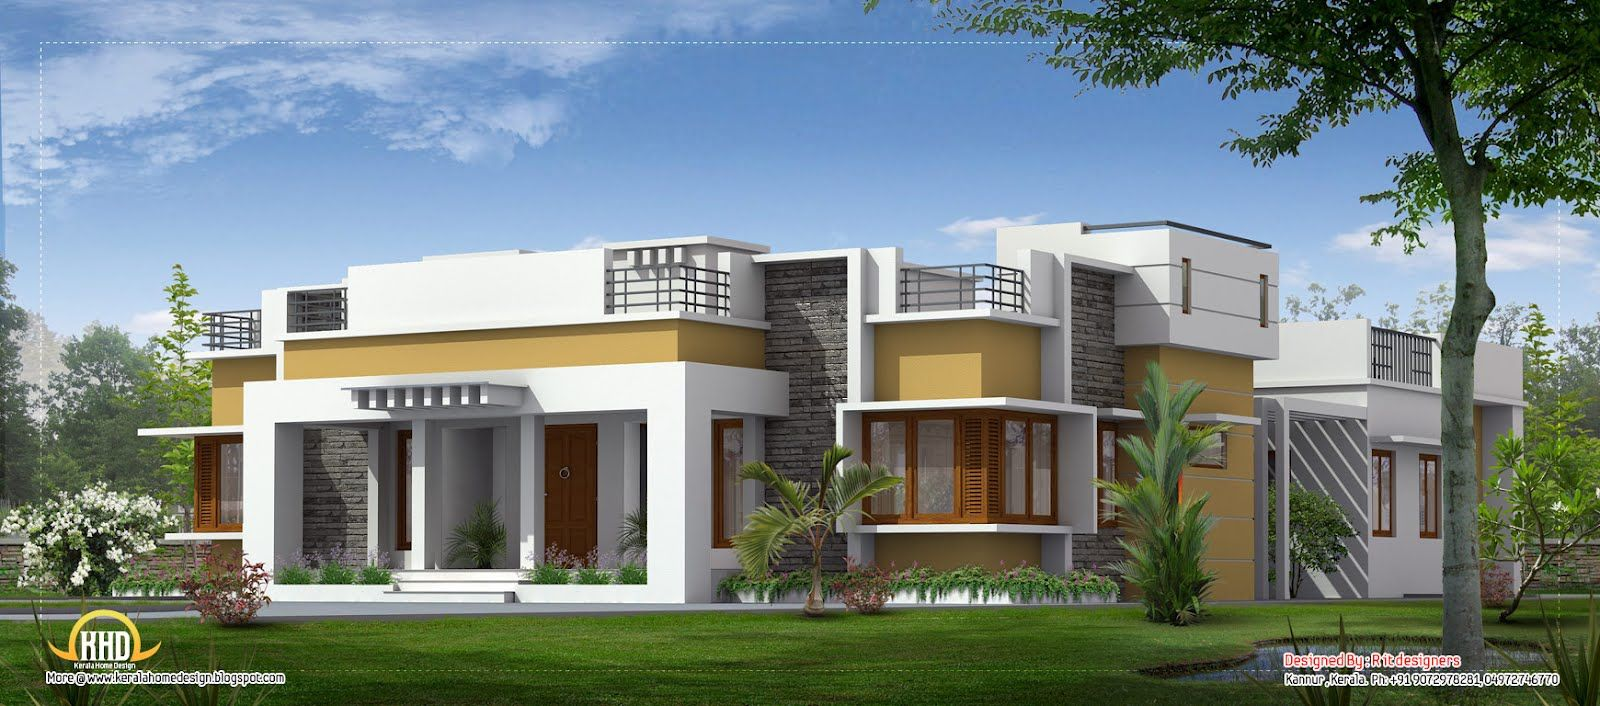 Single level designer home single floor house plans for Single house front design